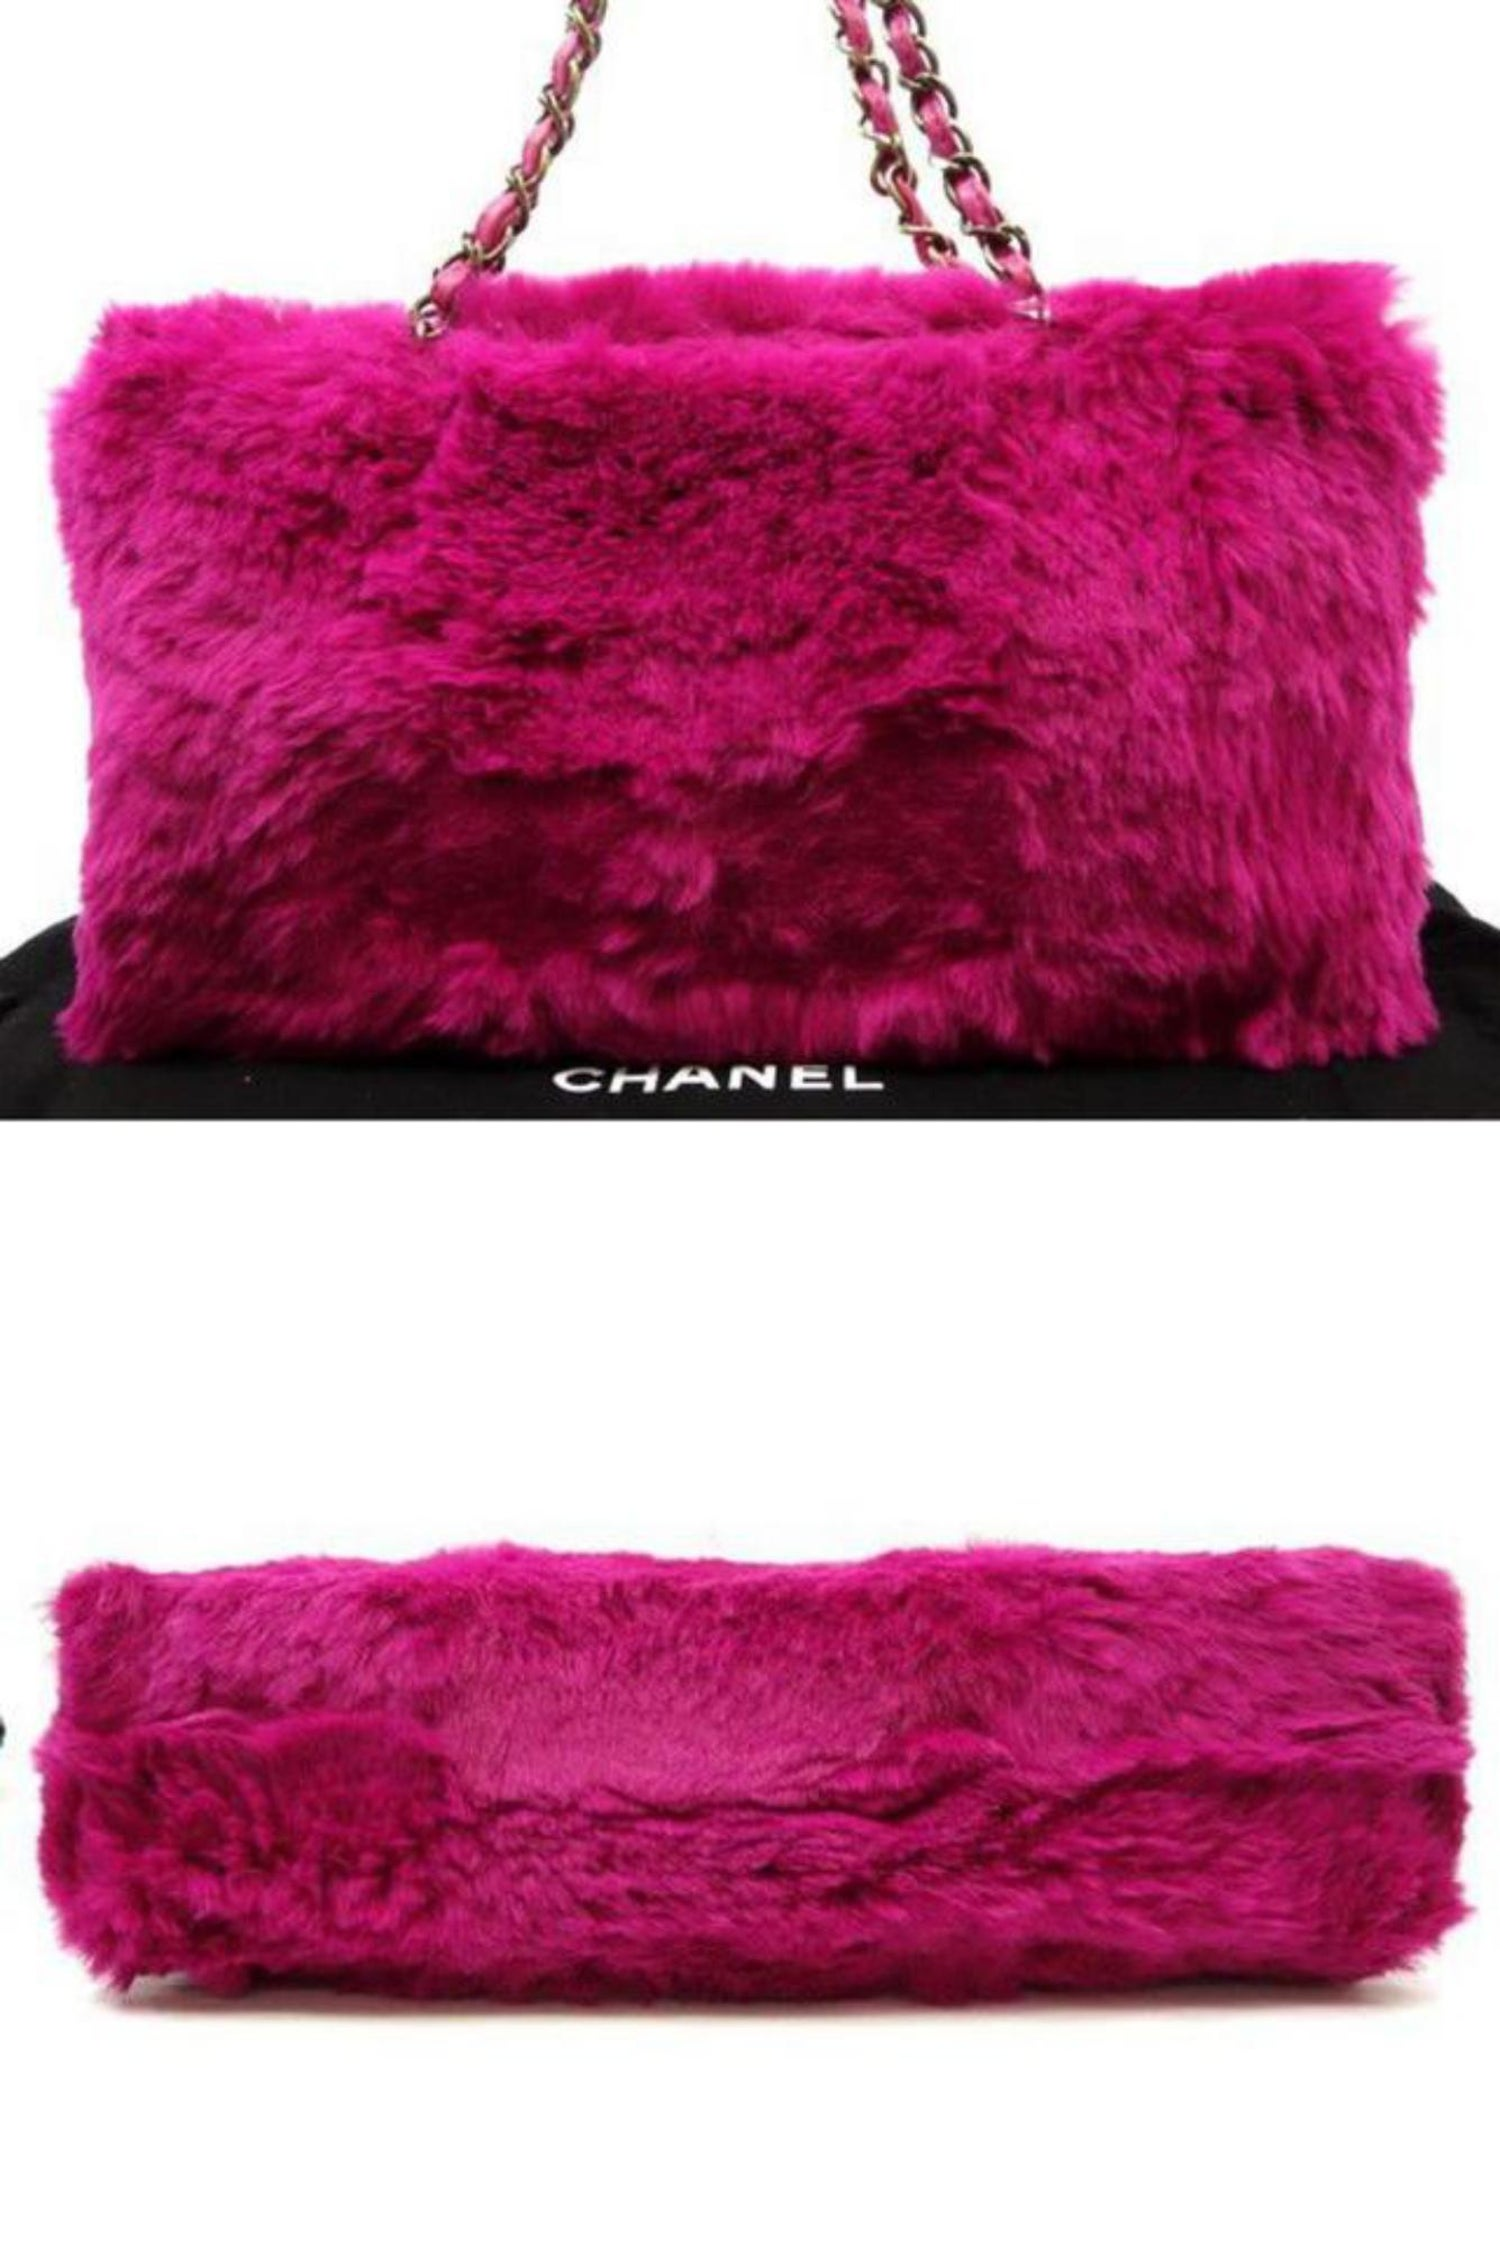 fed3d4c989a6 Chanel Fuchsia Chain Tote 228729 Pink Rabbit Fur Shoulder Bag For Sale at  1stdibs